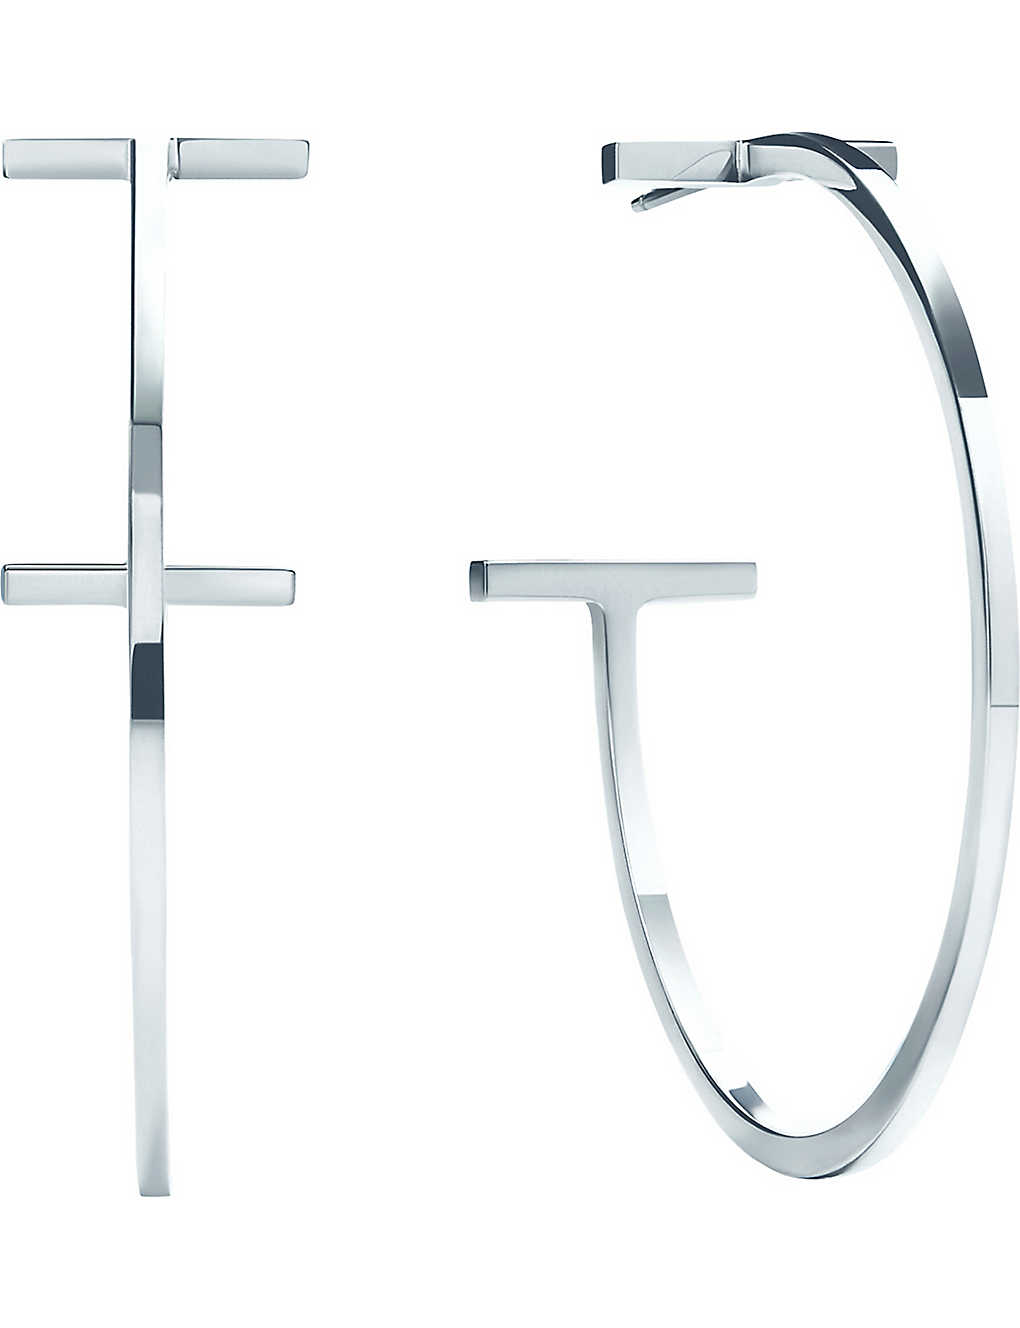 50453cdbd TIFFANY & CO - Tiffany T sterling silver hoop earrings | Selfridges.com